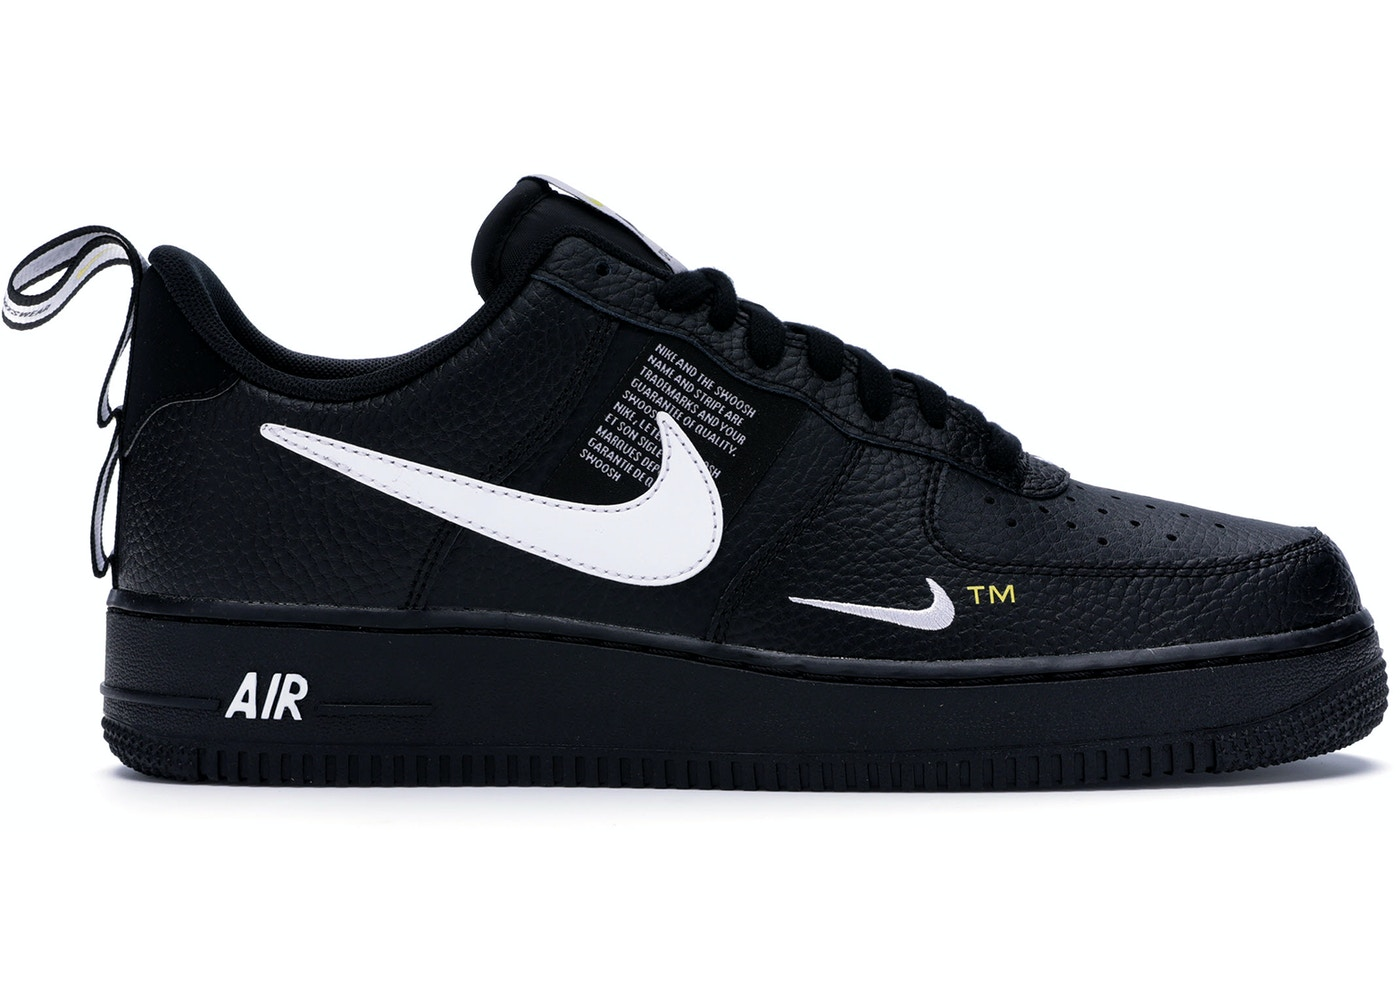 timeless design d87cd 26dd9 Buy Nike Air Force 1 Shoes   Deadstock Sneakers